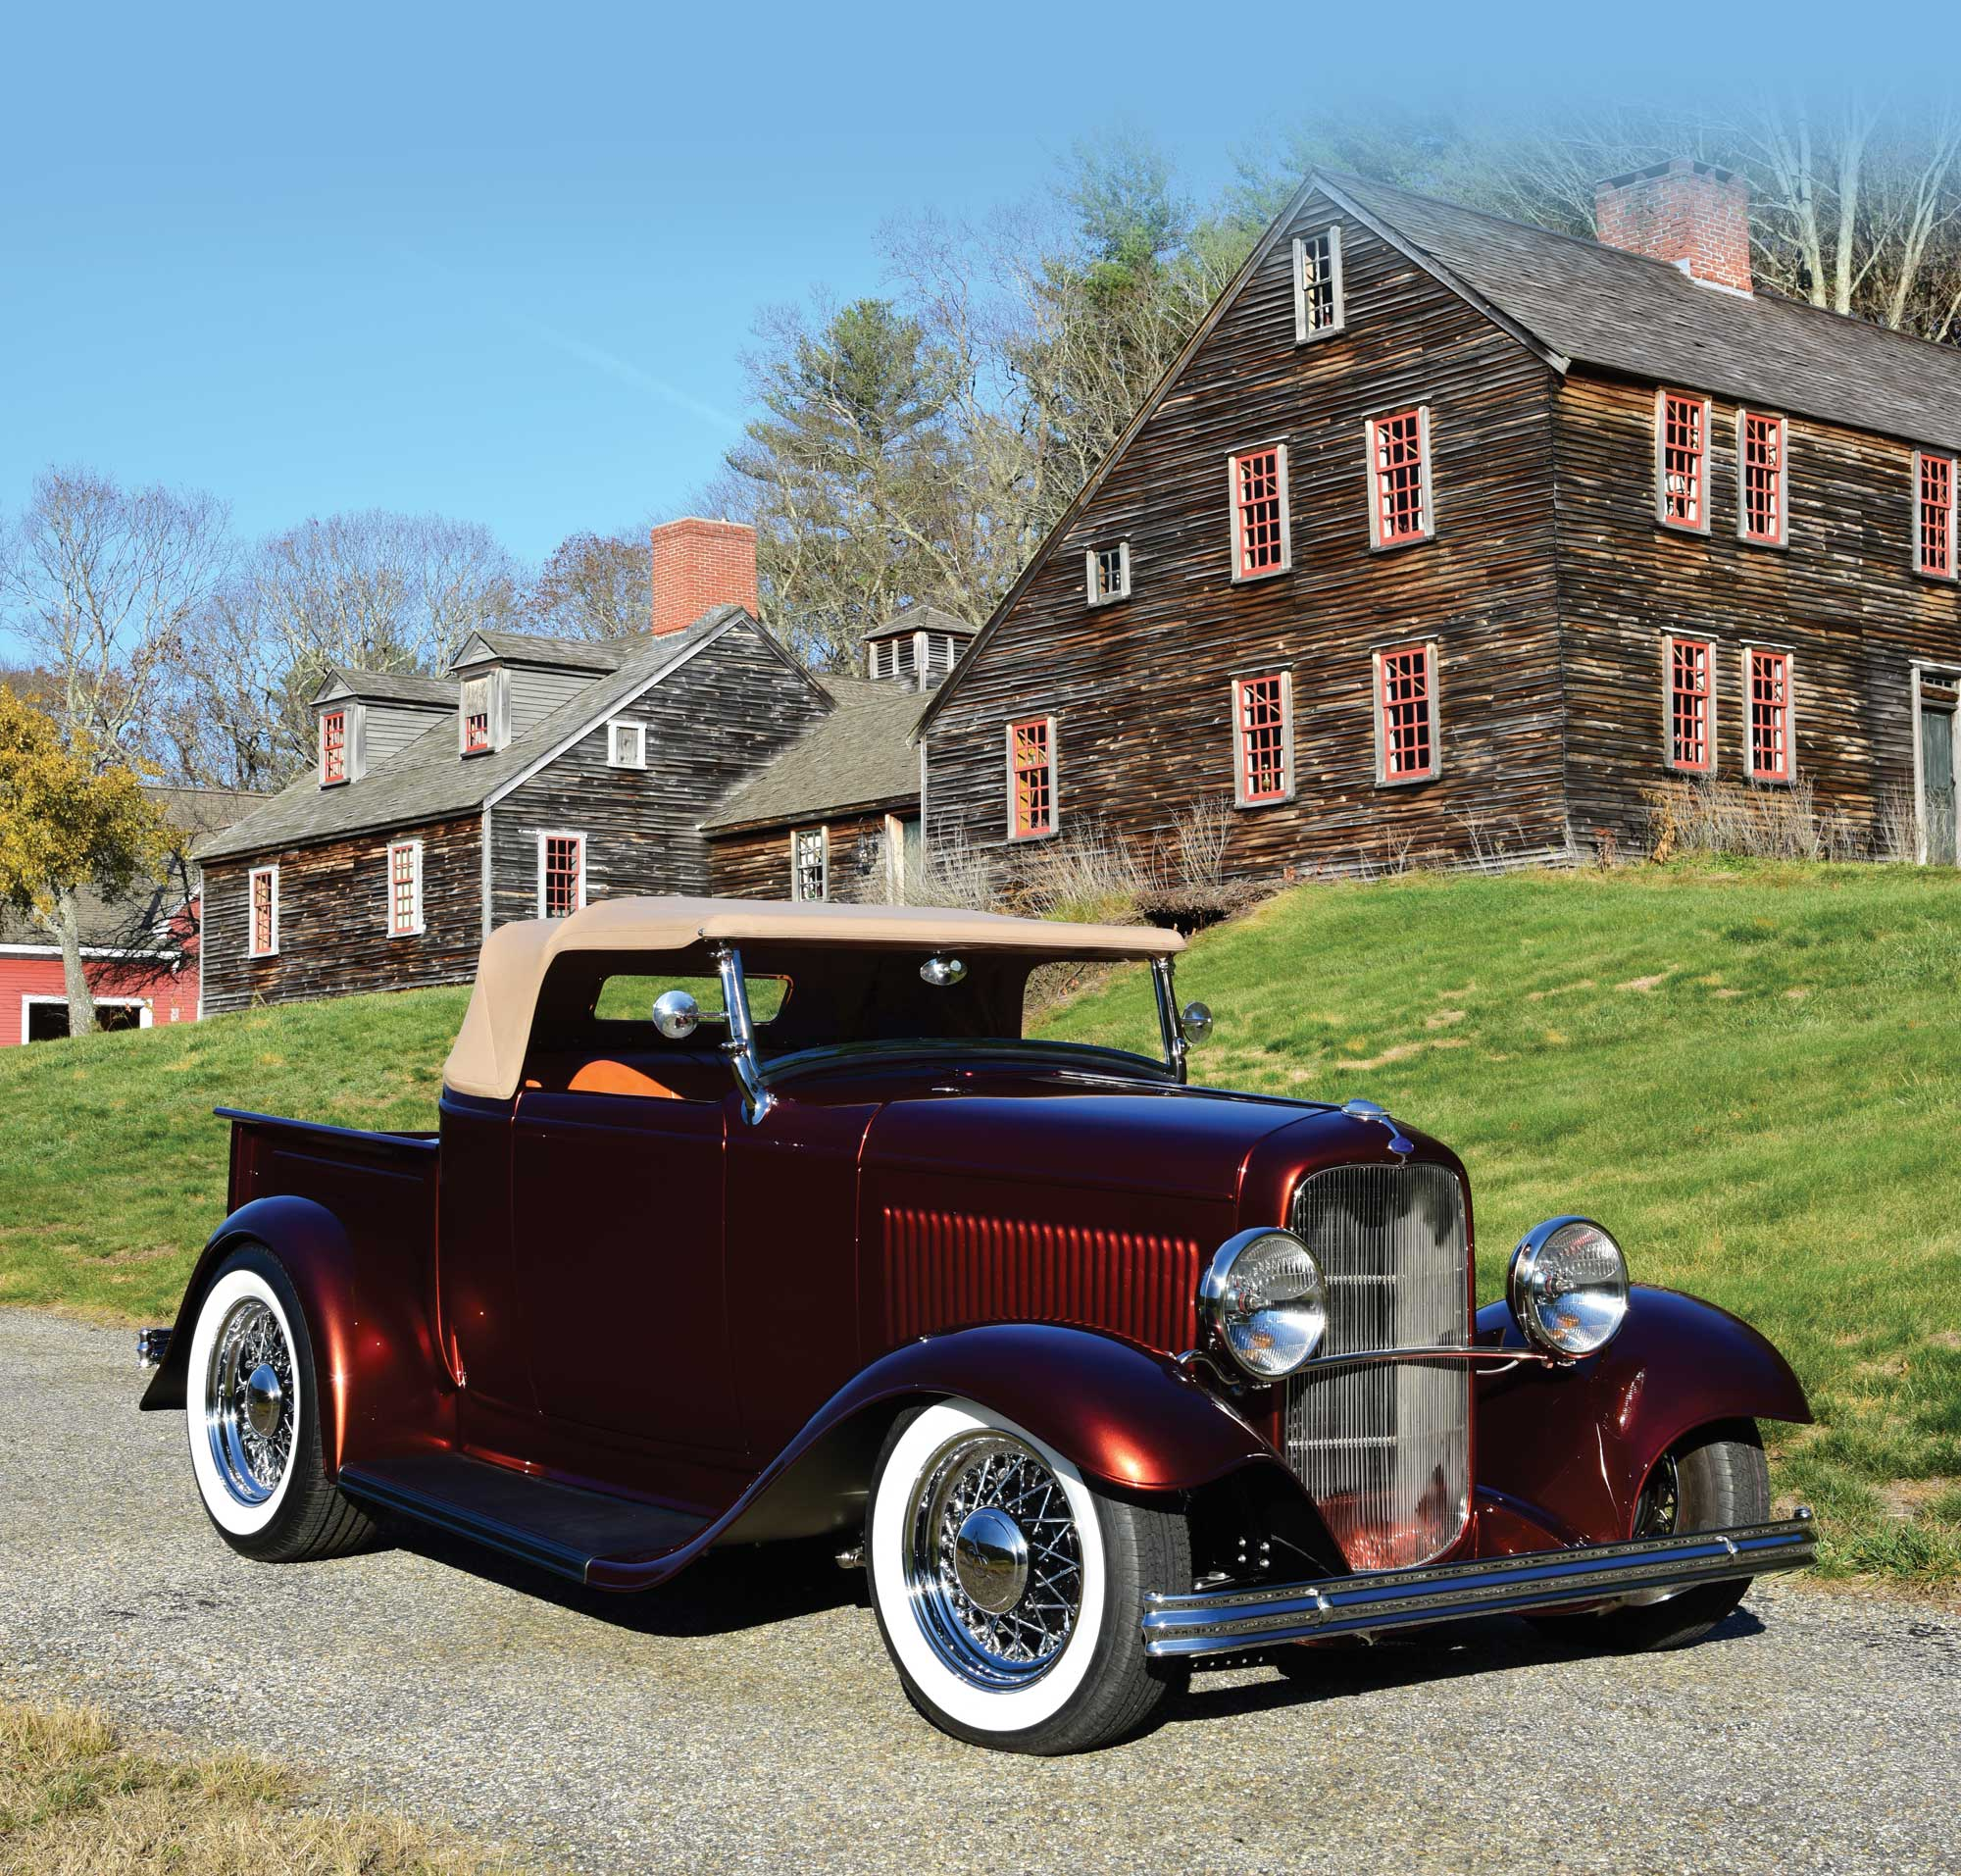 maroon 1932 Ford